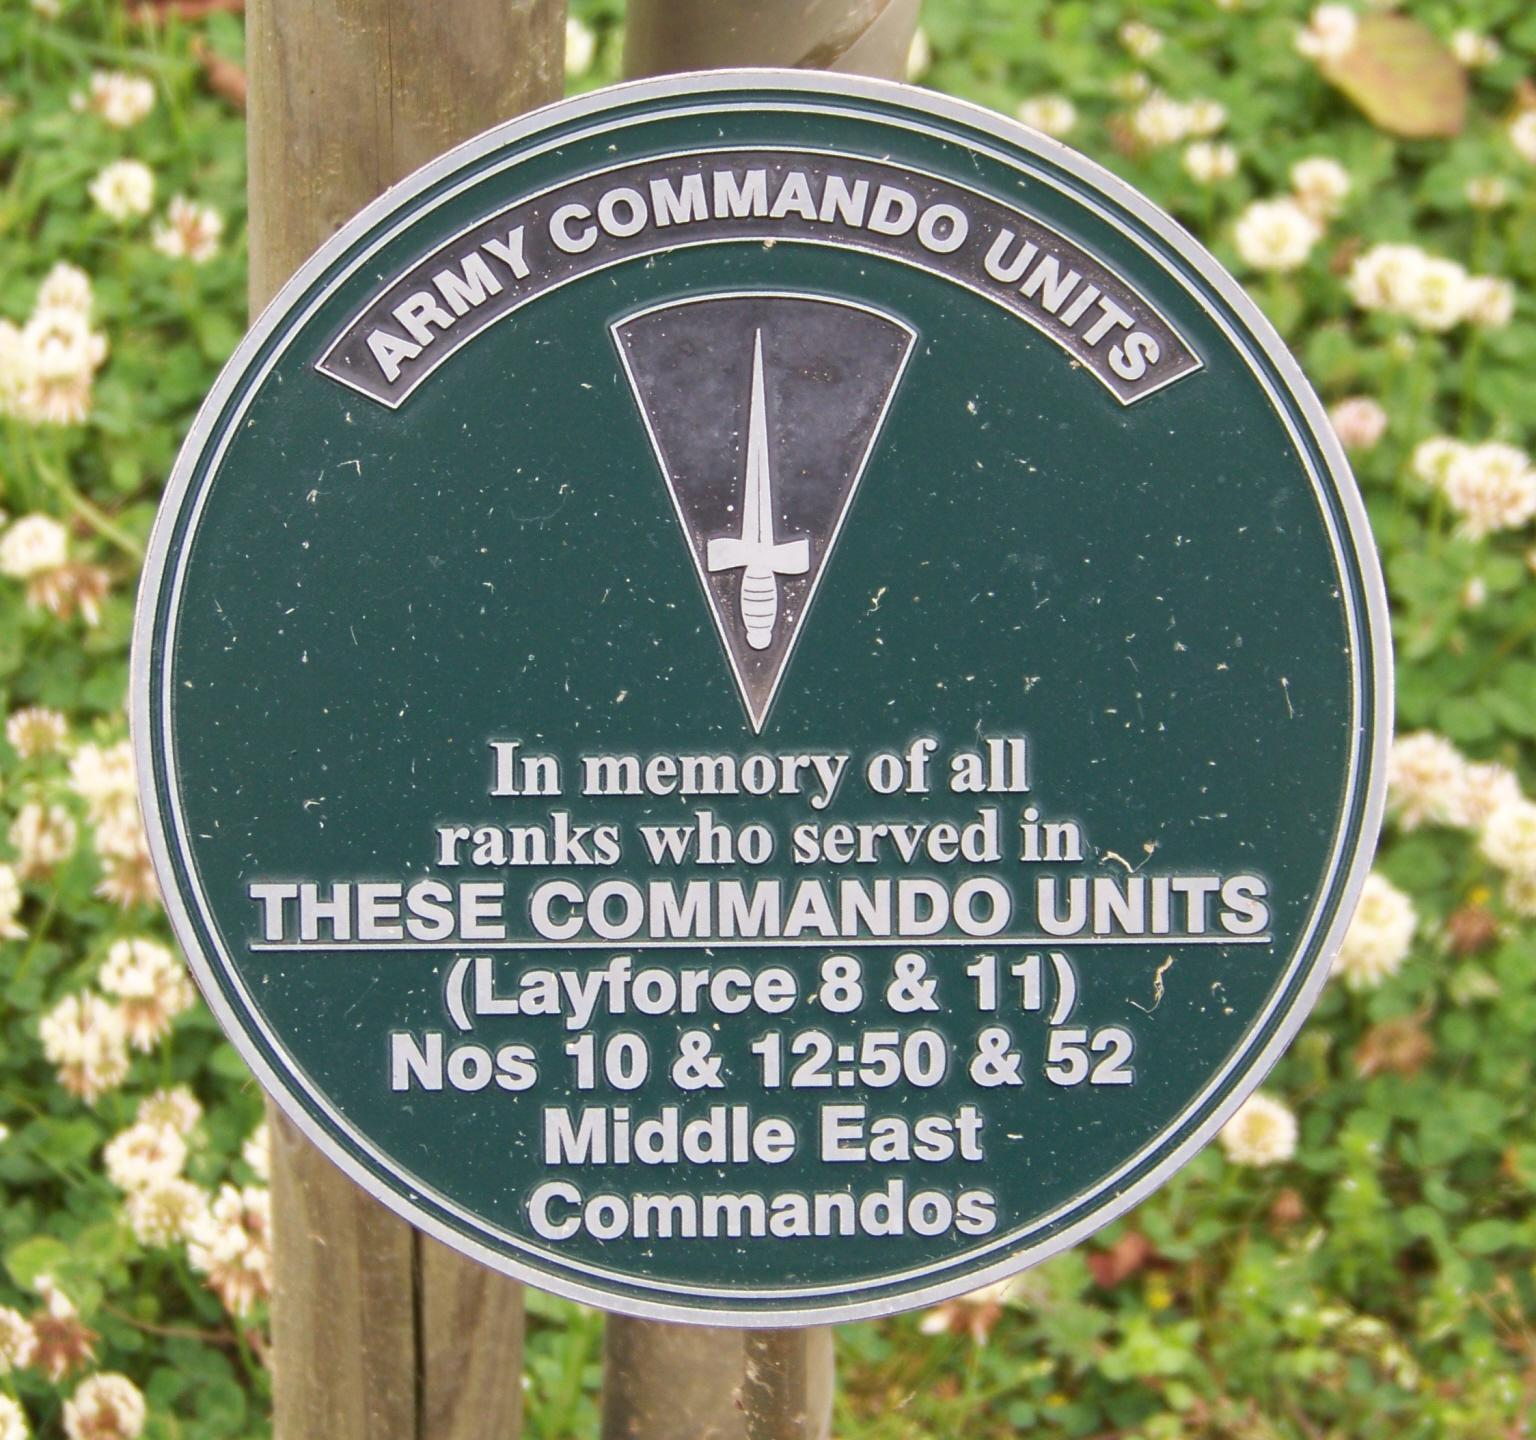 Nos 8, 10, 11, 12, 50 & 52 (ME) Commandos Memorial Plaque at Alrewas